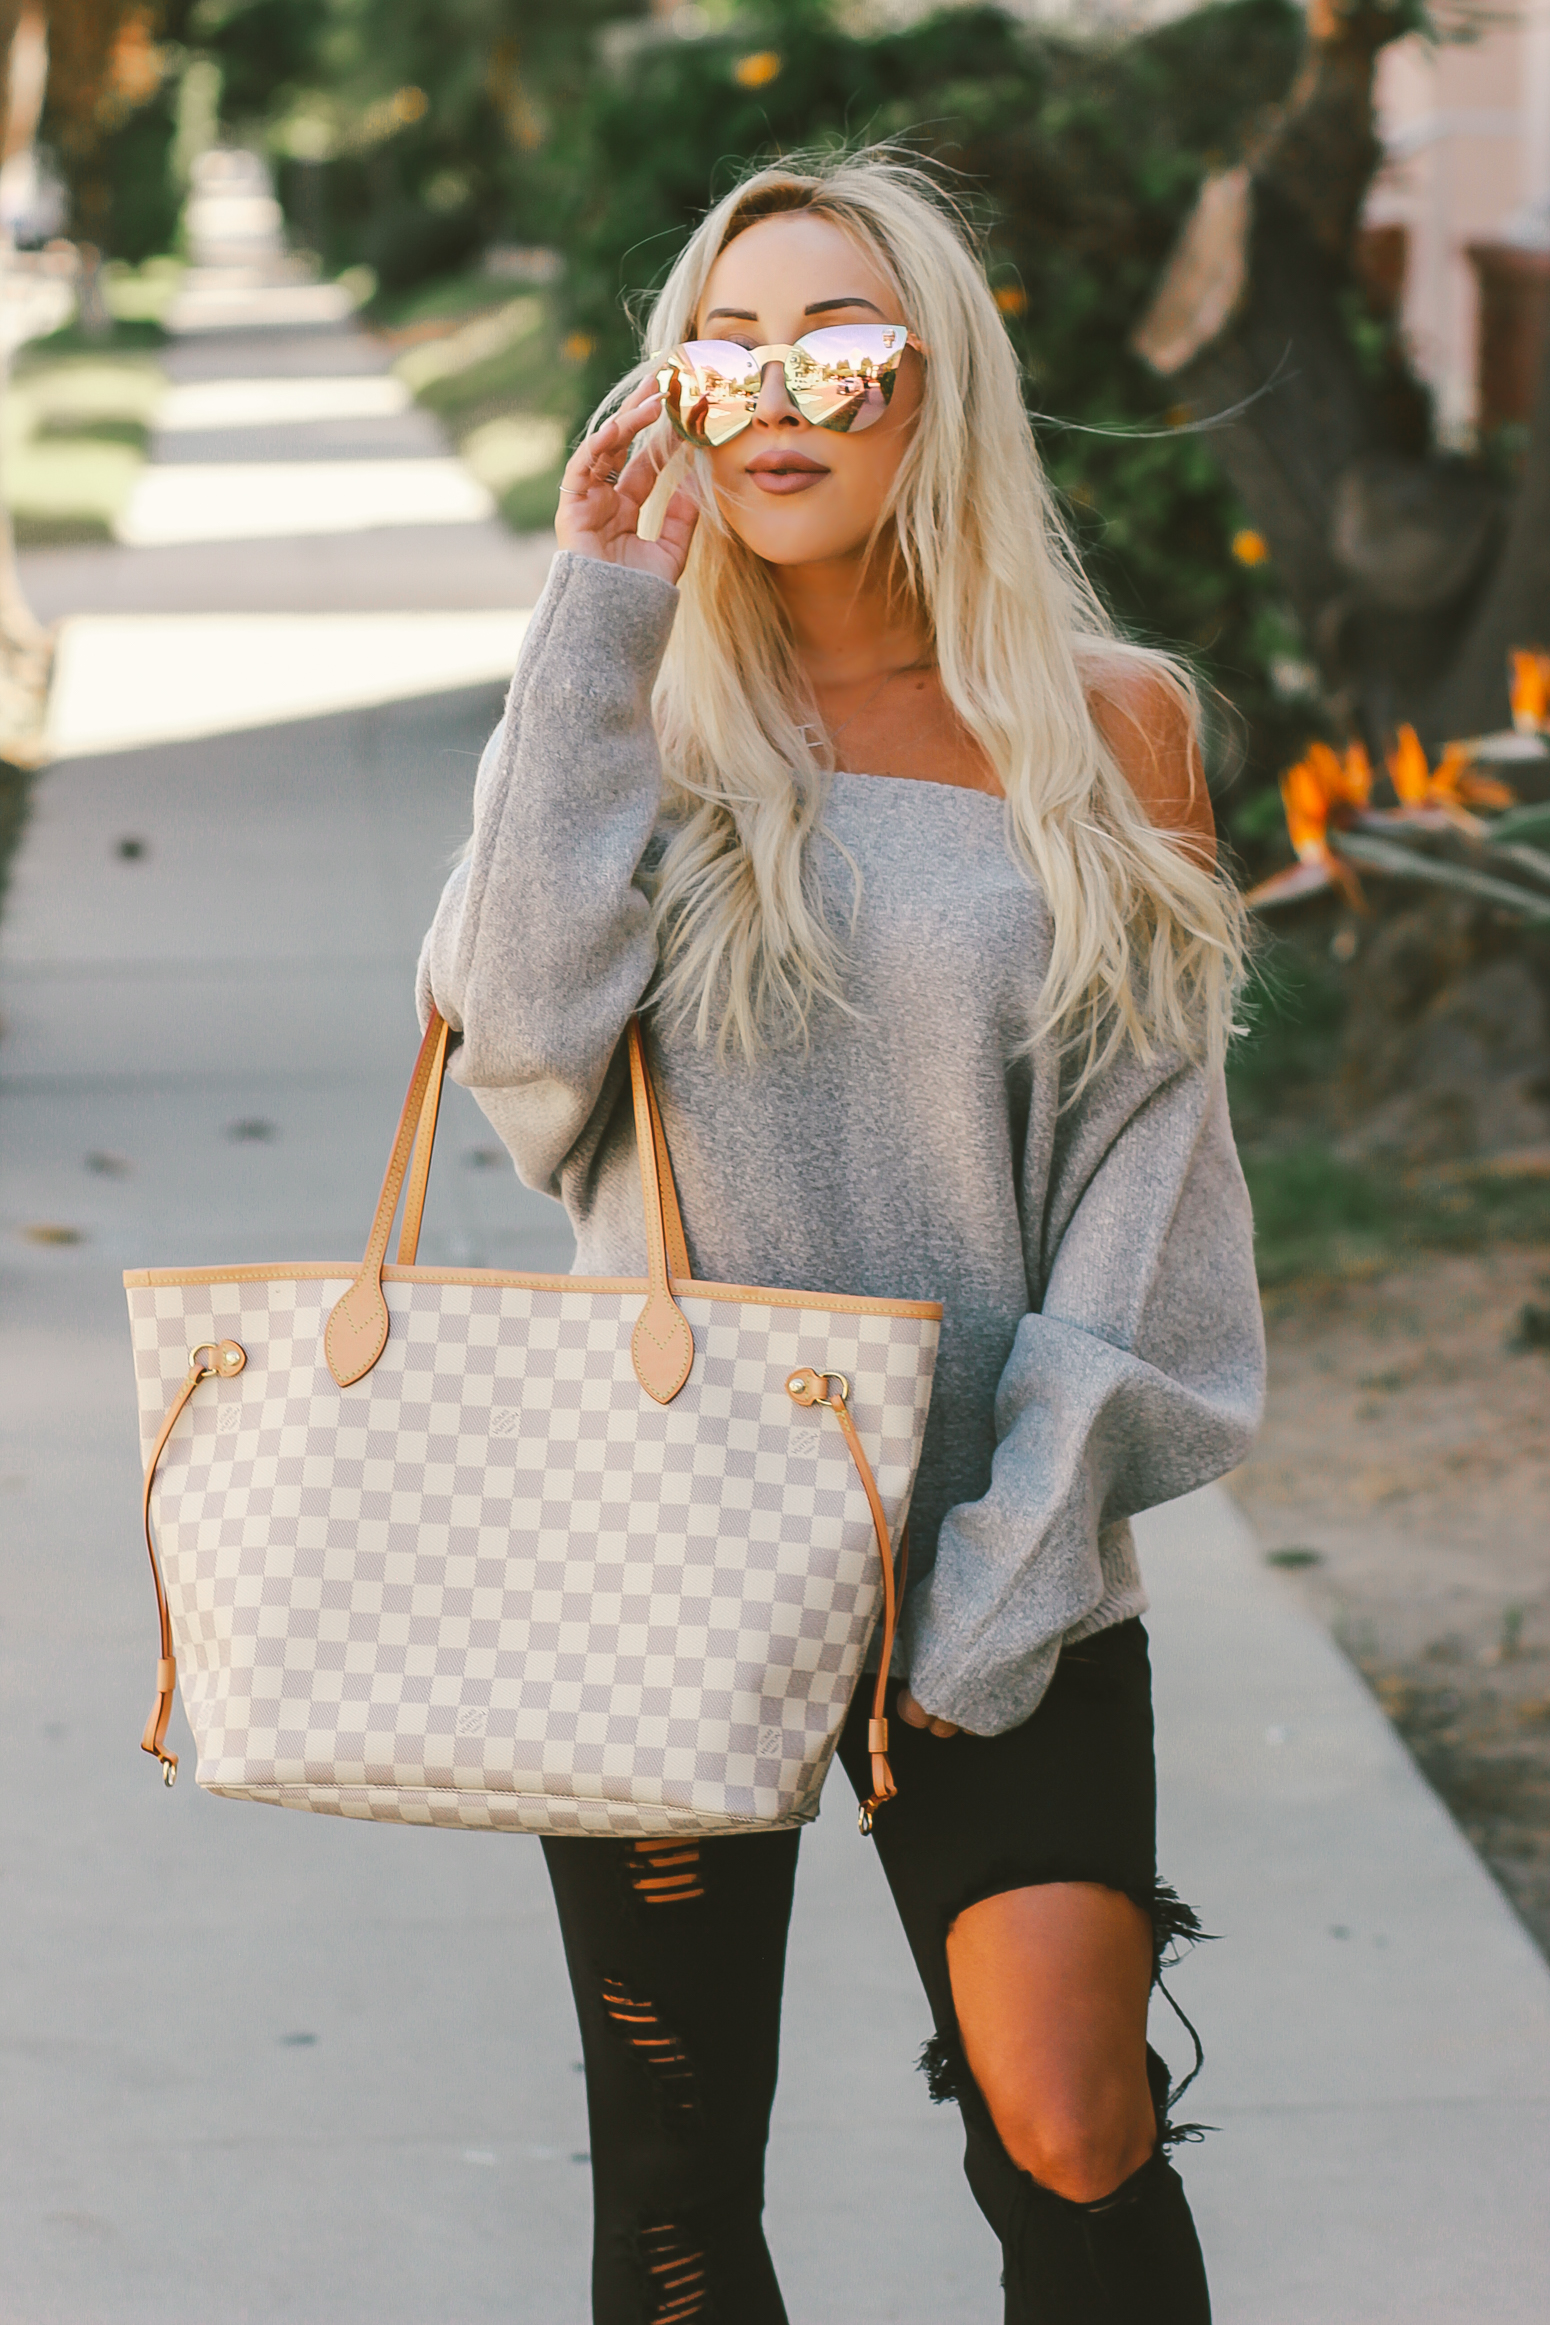 Blondie in the City | Fall Fashion Off The Shoulder Sweater, Louis Vuitton Neverfull MM | Pink Loafers, Pink Mirrored Sunglasses